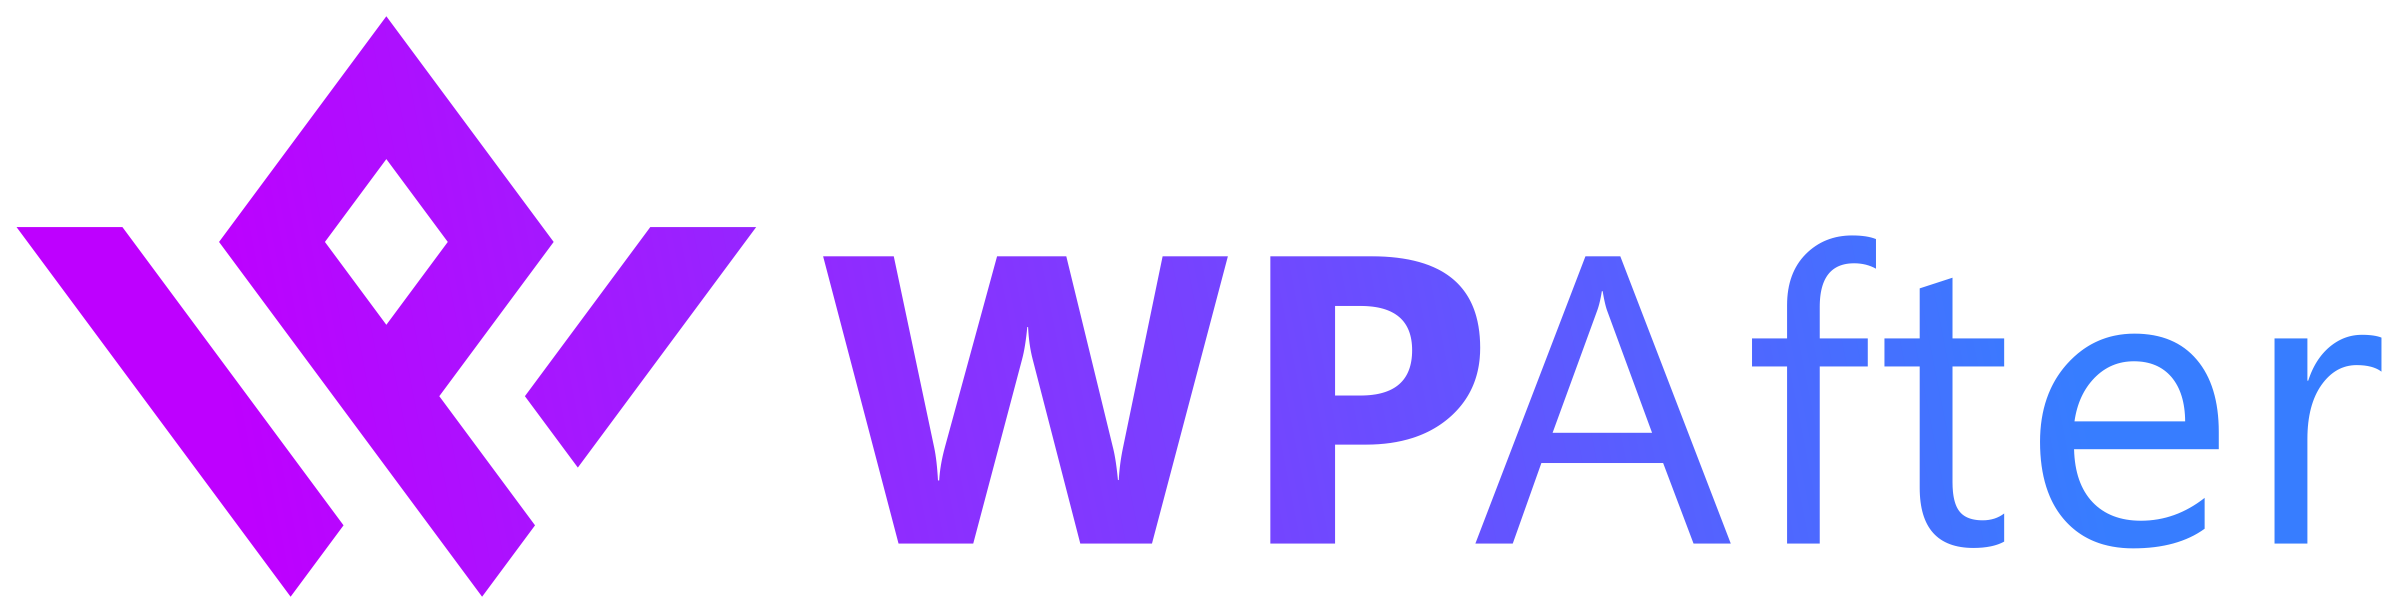 WPAfter